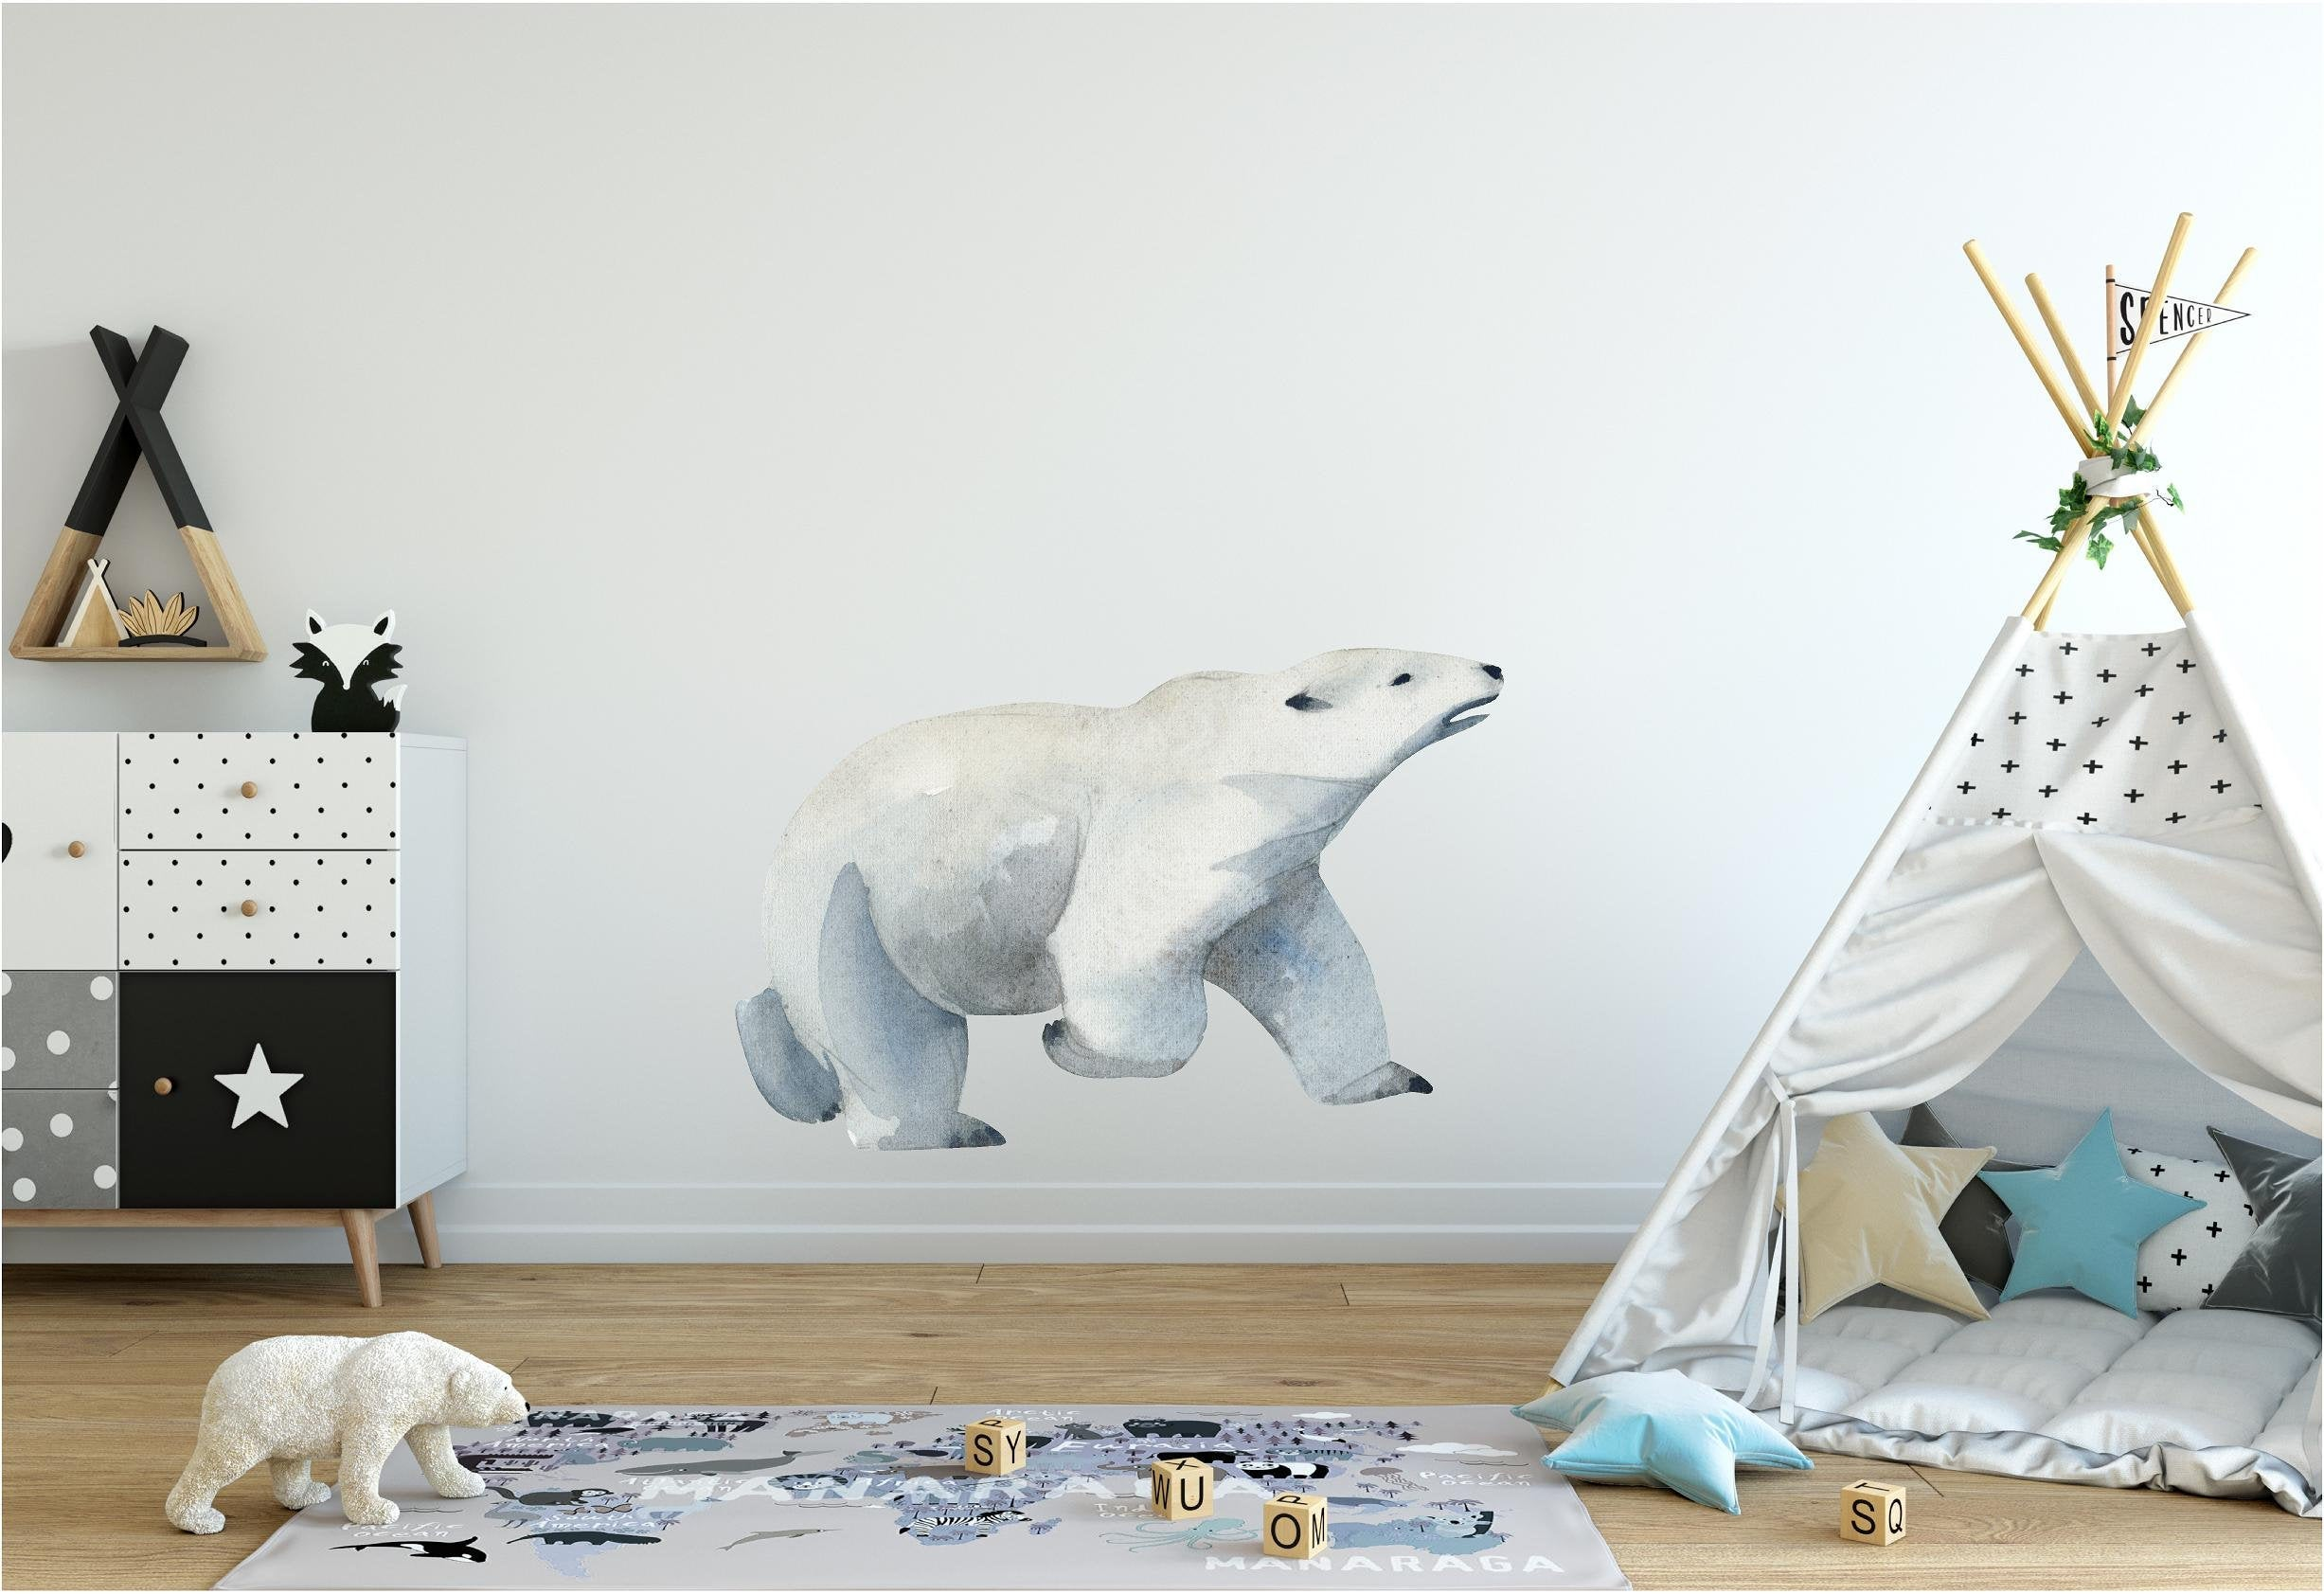 Watercolor Polar Bear Wall Decal Removable Fabric Vinyl Arctic Sea Animal Wall Sticker